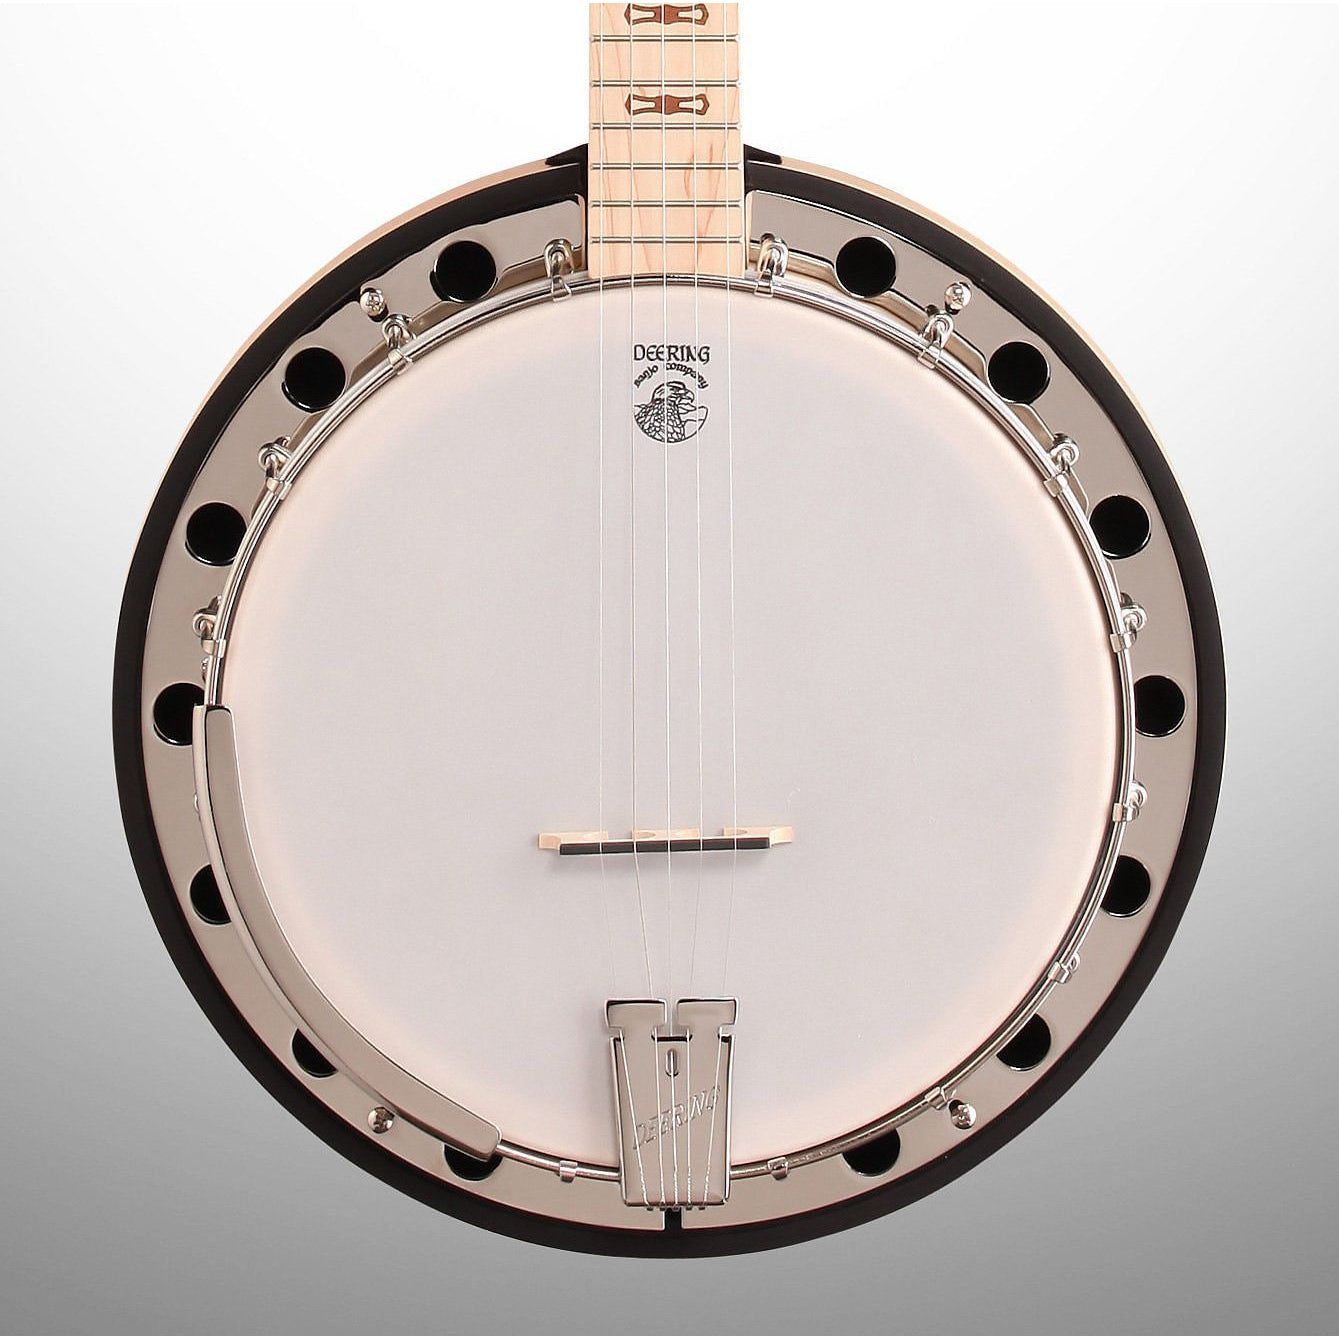 Deering Goodtime 2 Banjo with Resonator, 5-String